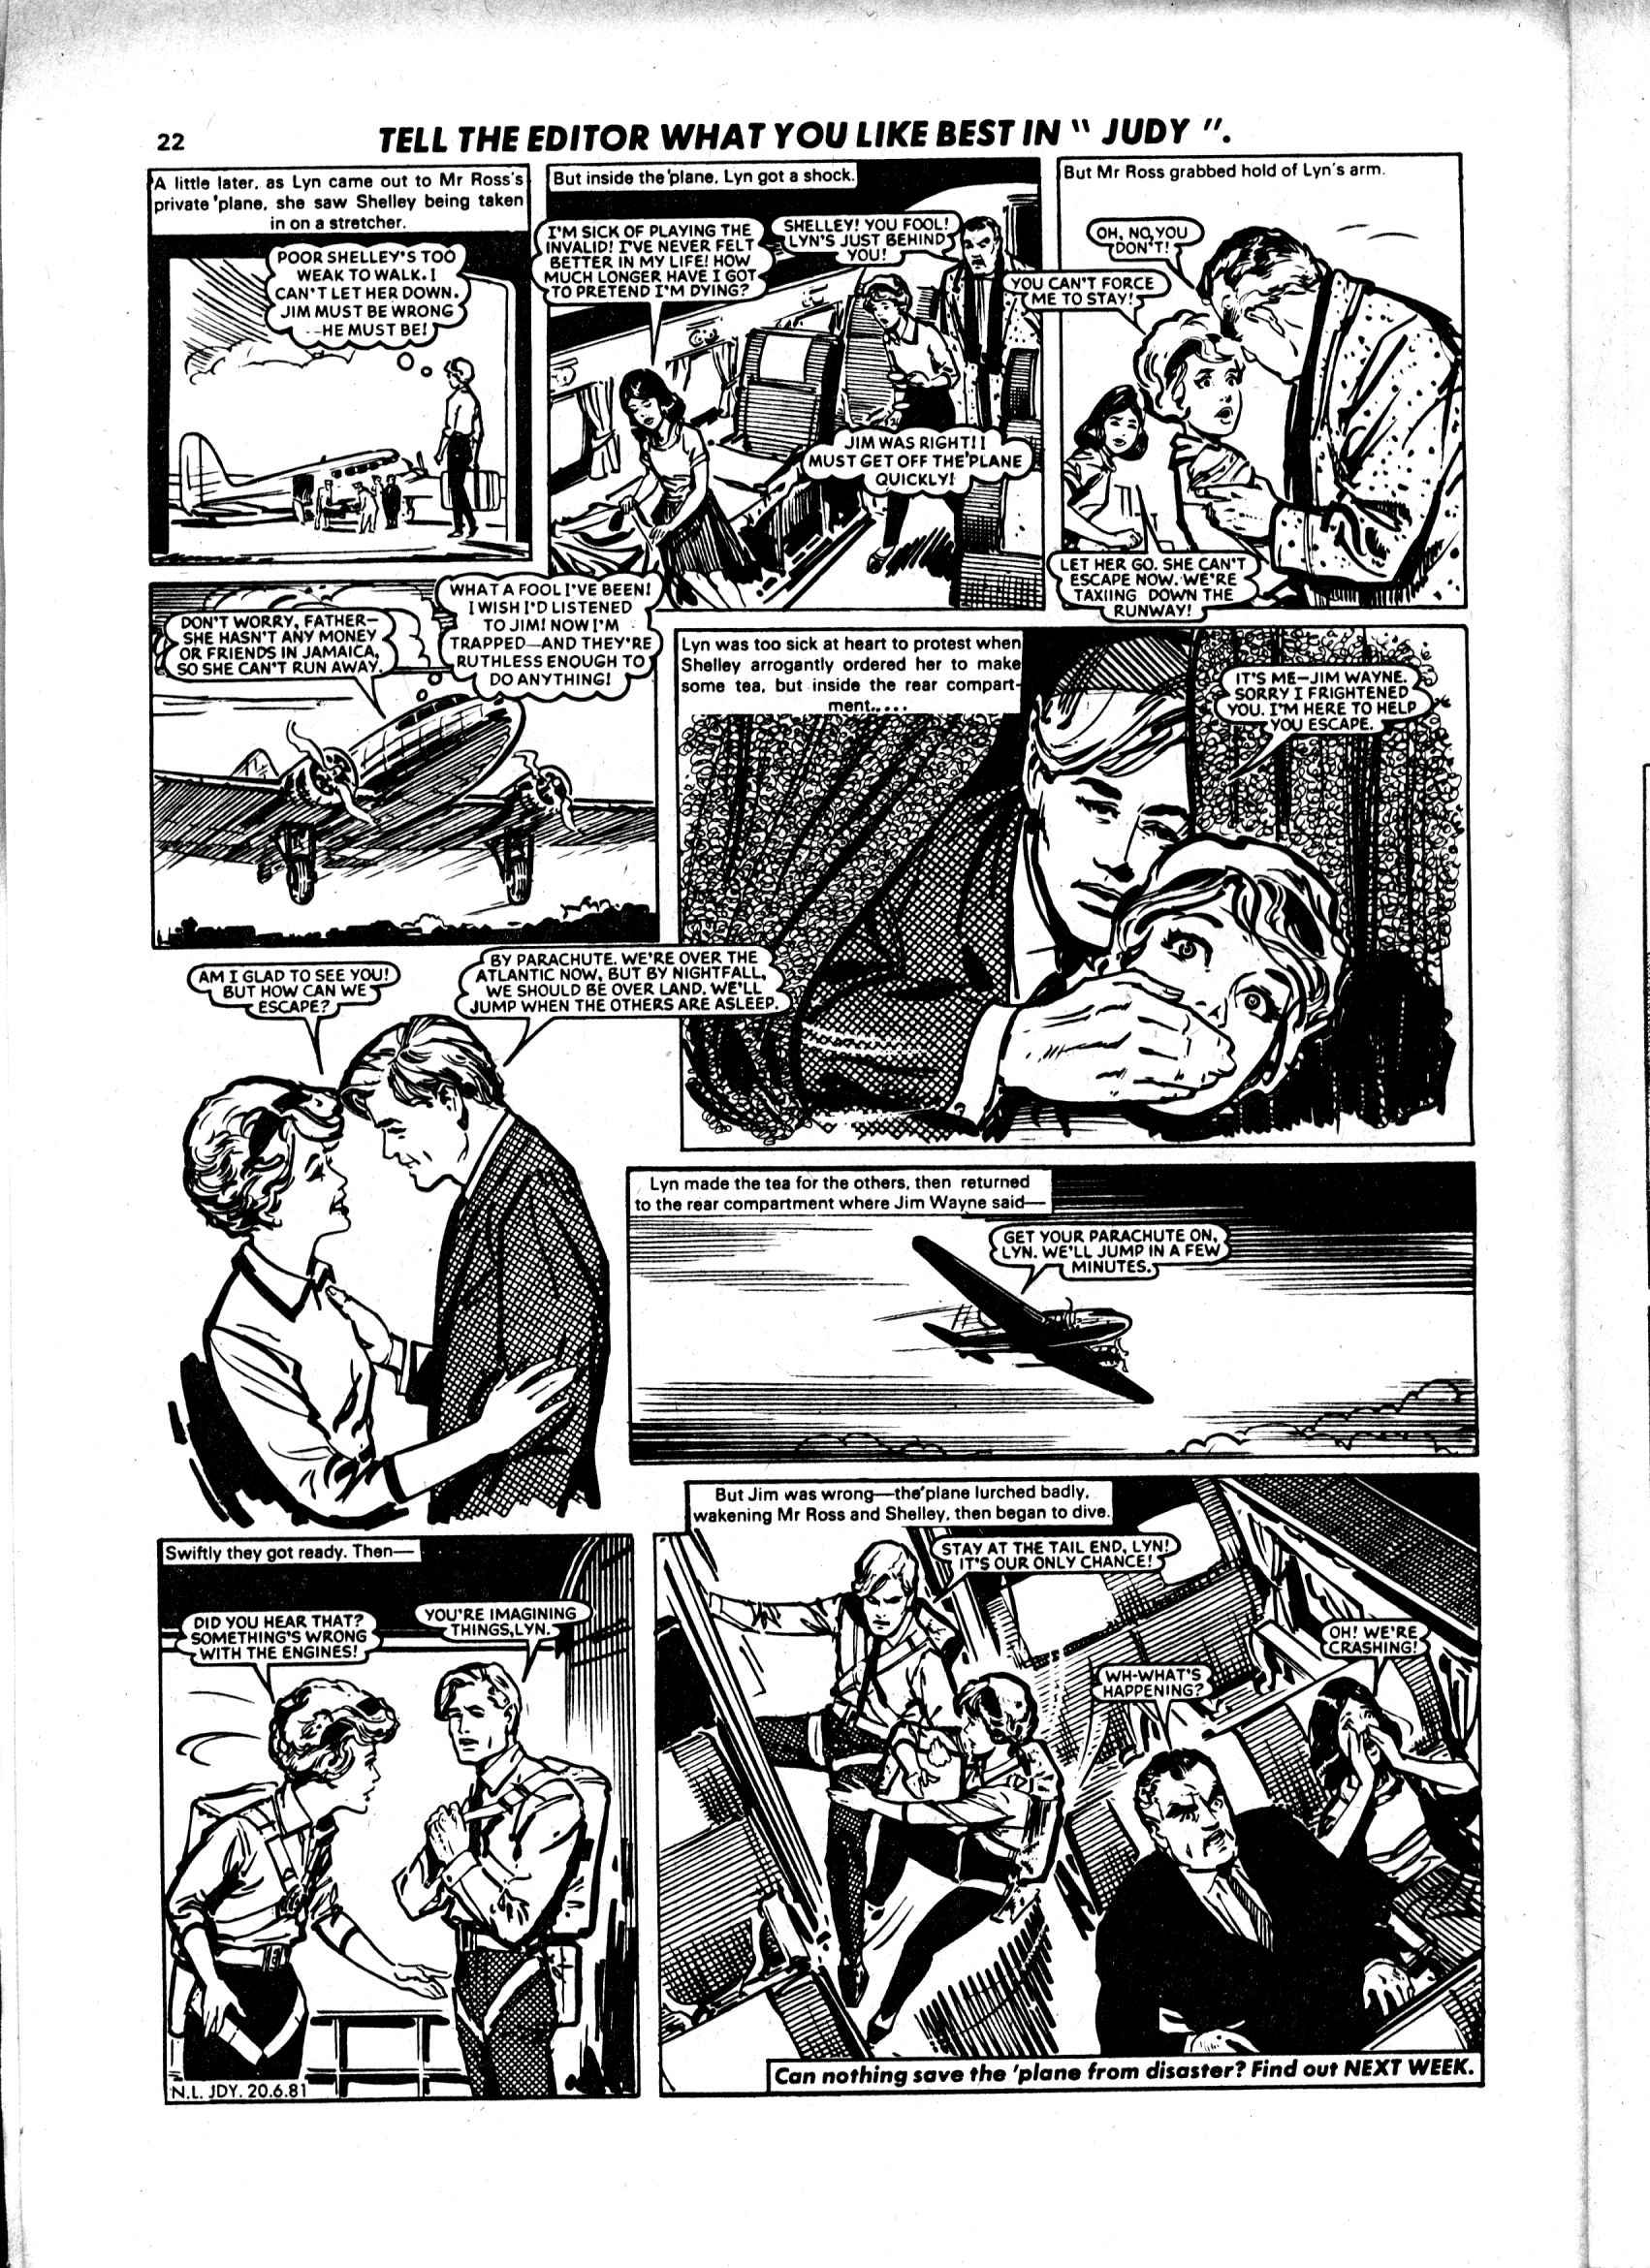 Read online Judy comic -  Issue #1119 - 22